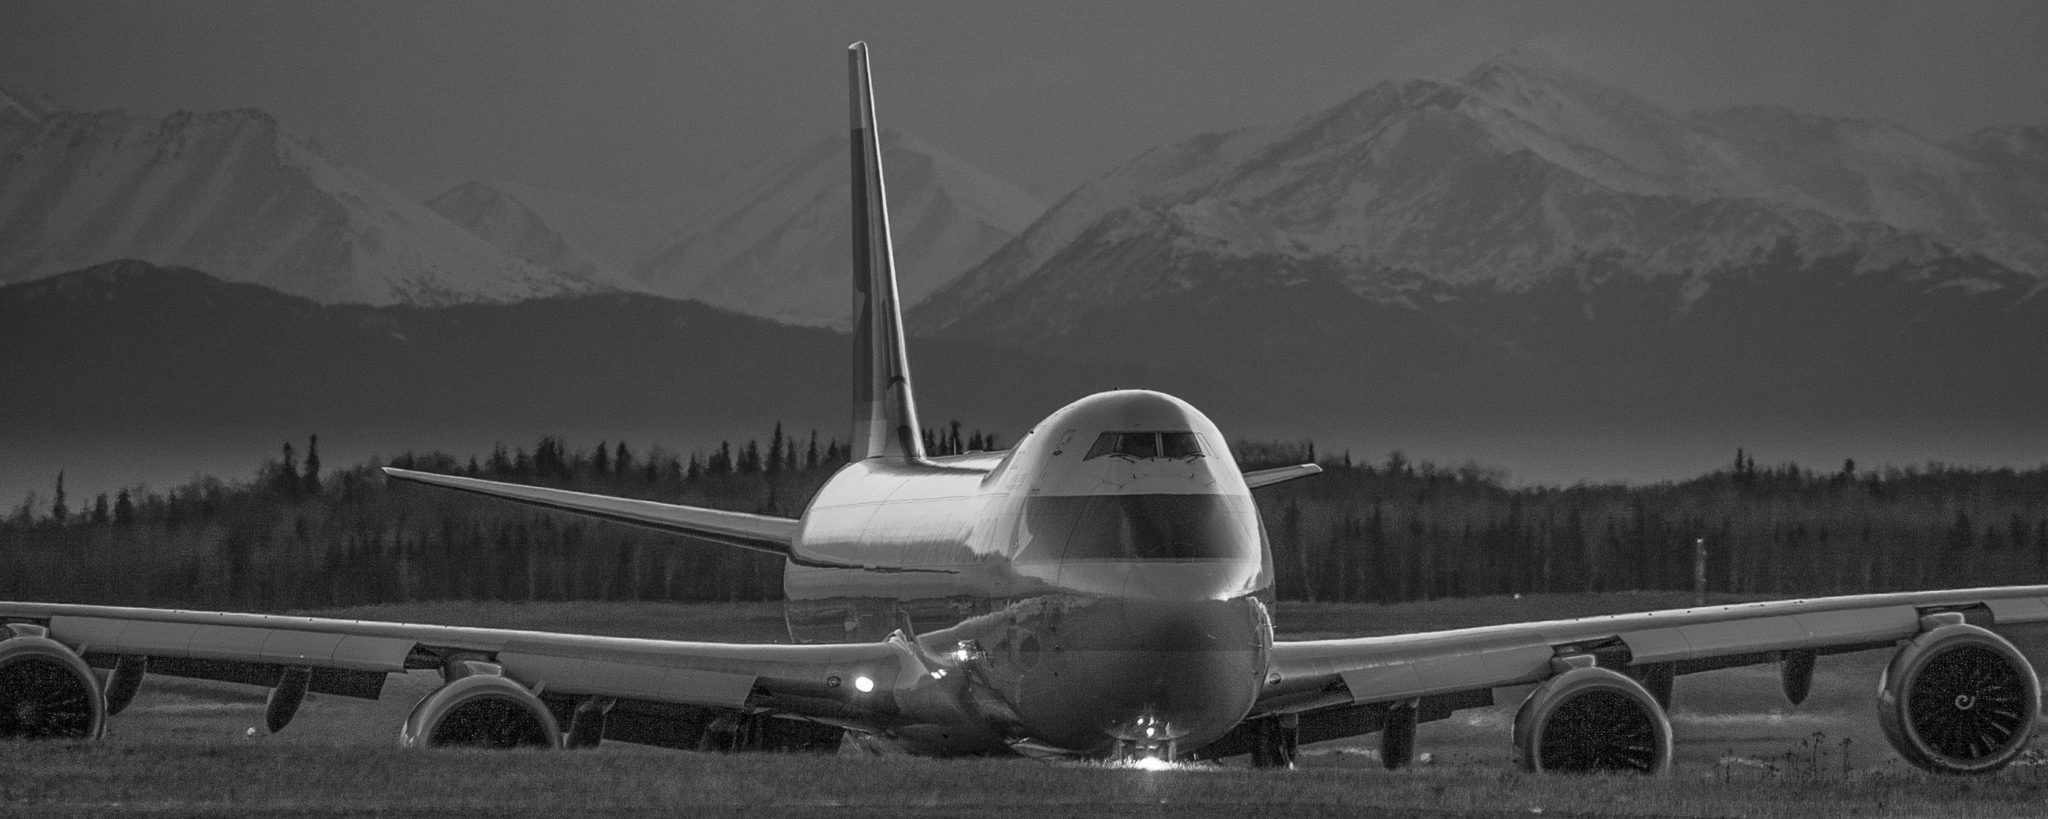 Alaska Aircraft portraits |Alaskafoto- Aircraft photography & Airplane photographers of Alaska